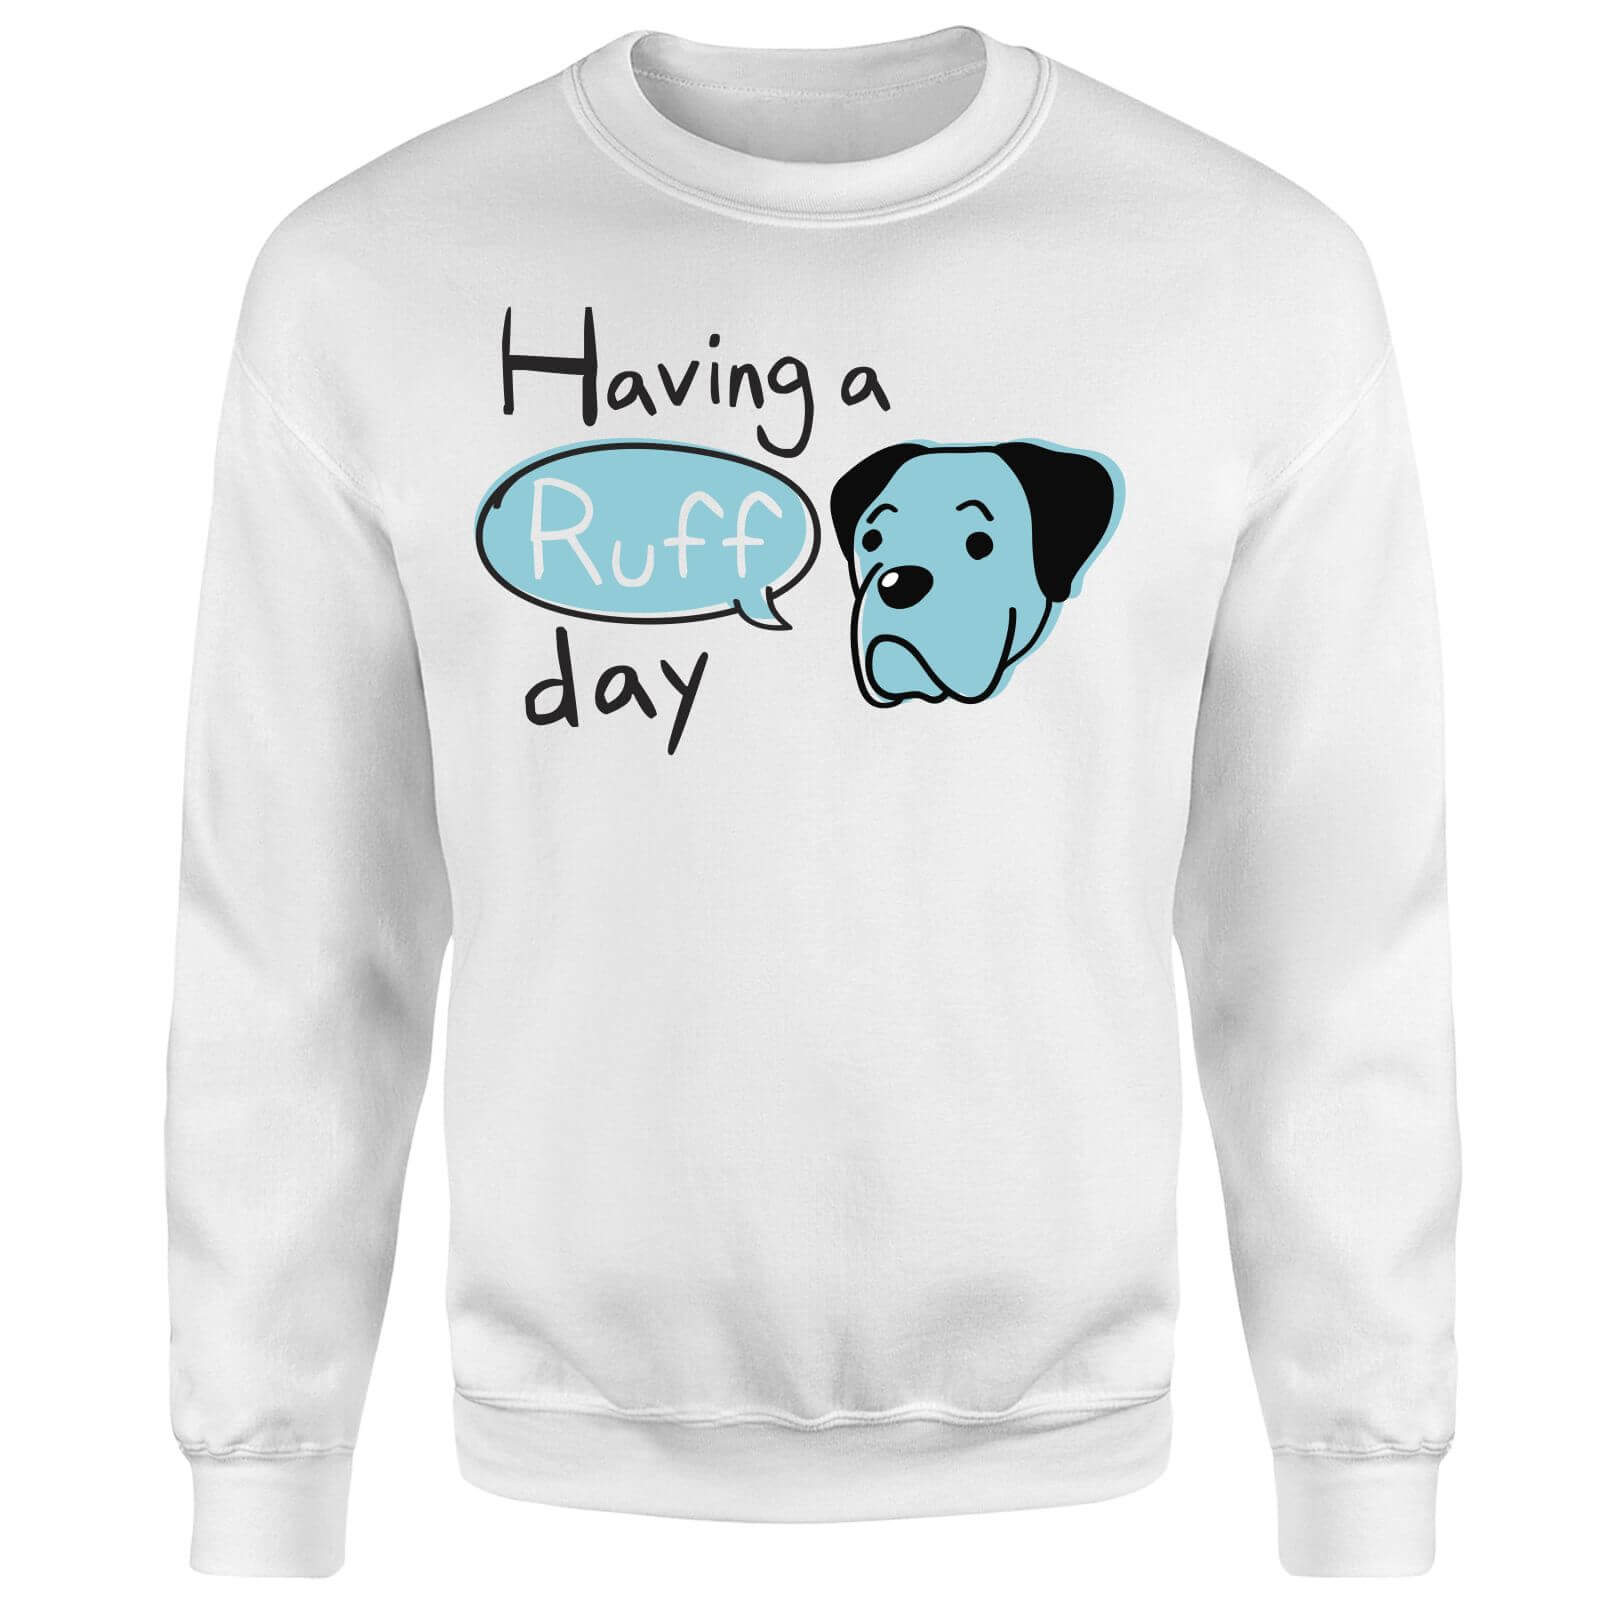 Having A Ruff Day Sweatshirt - White